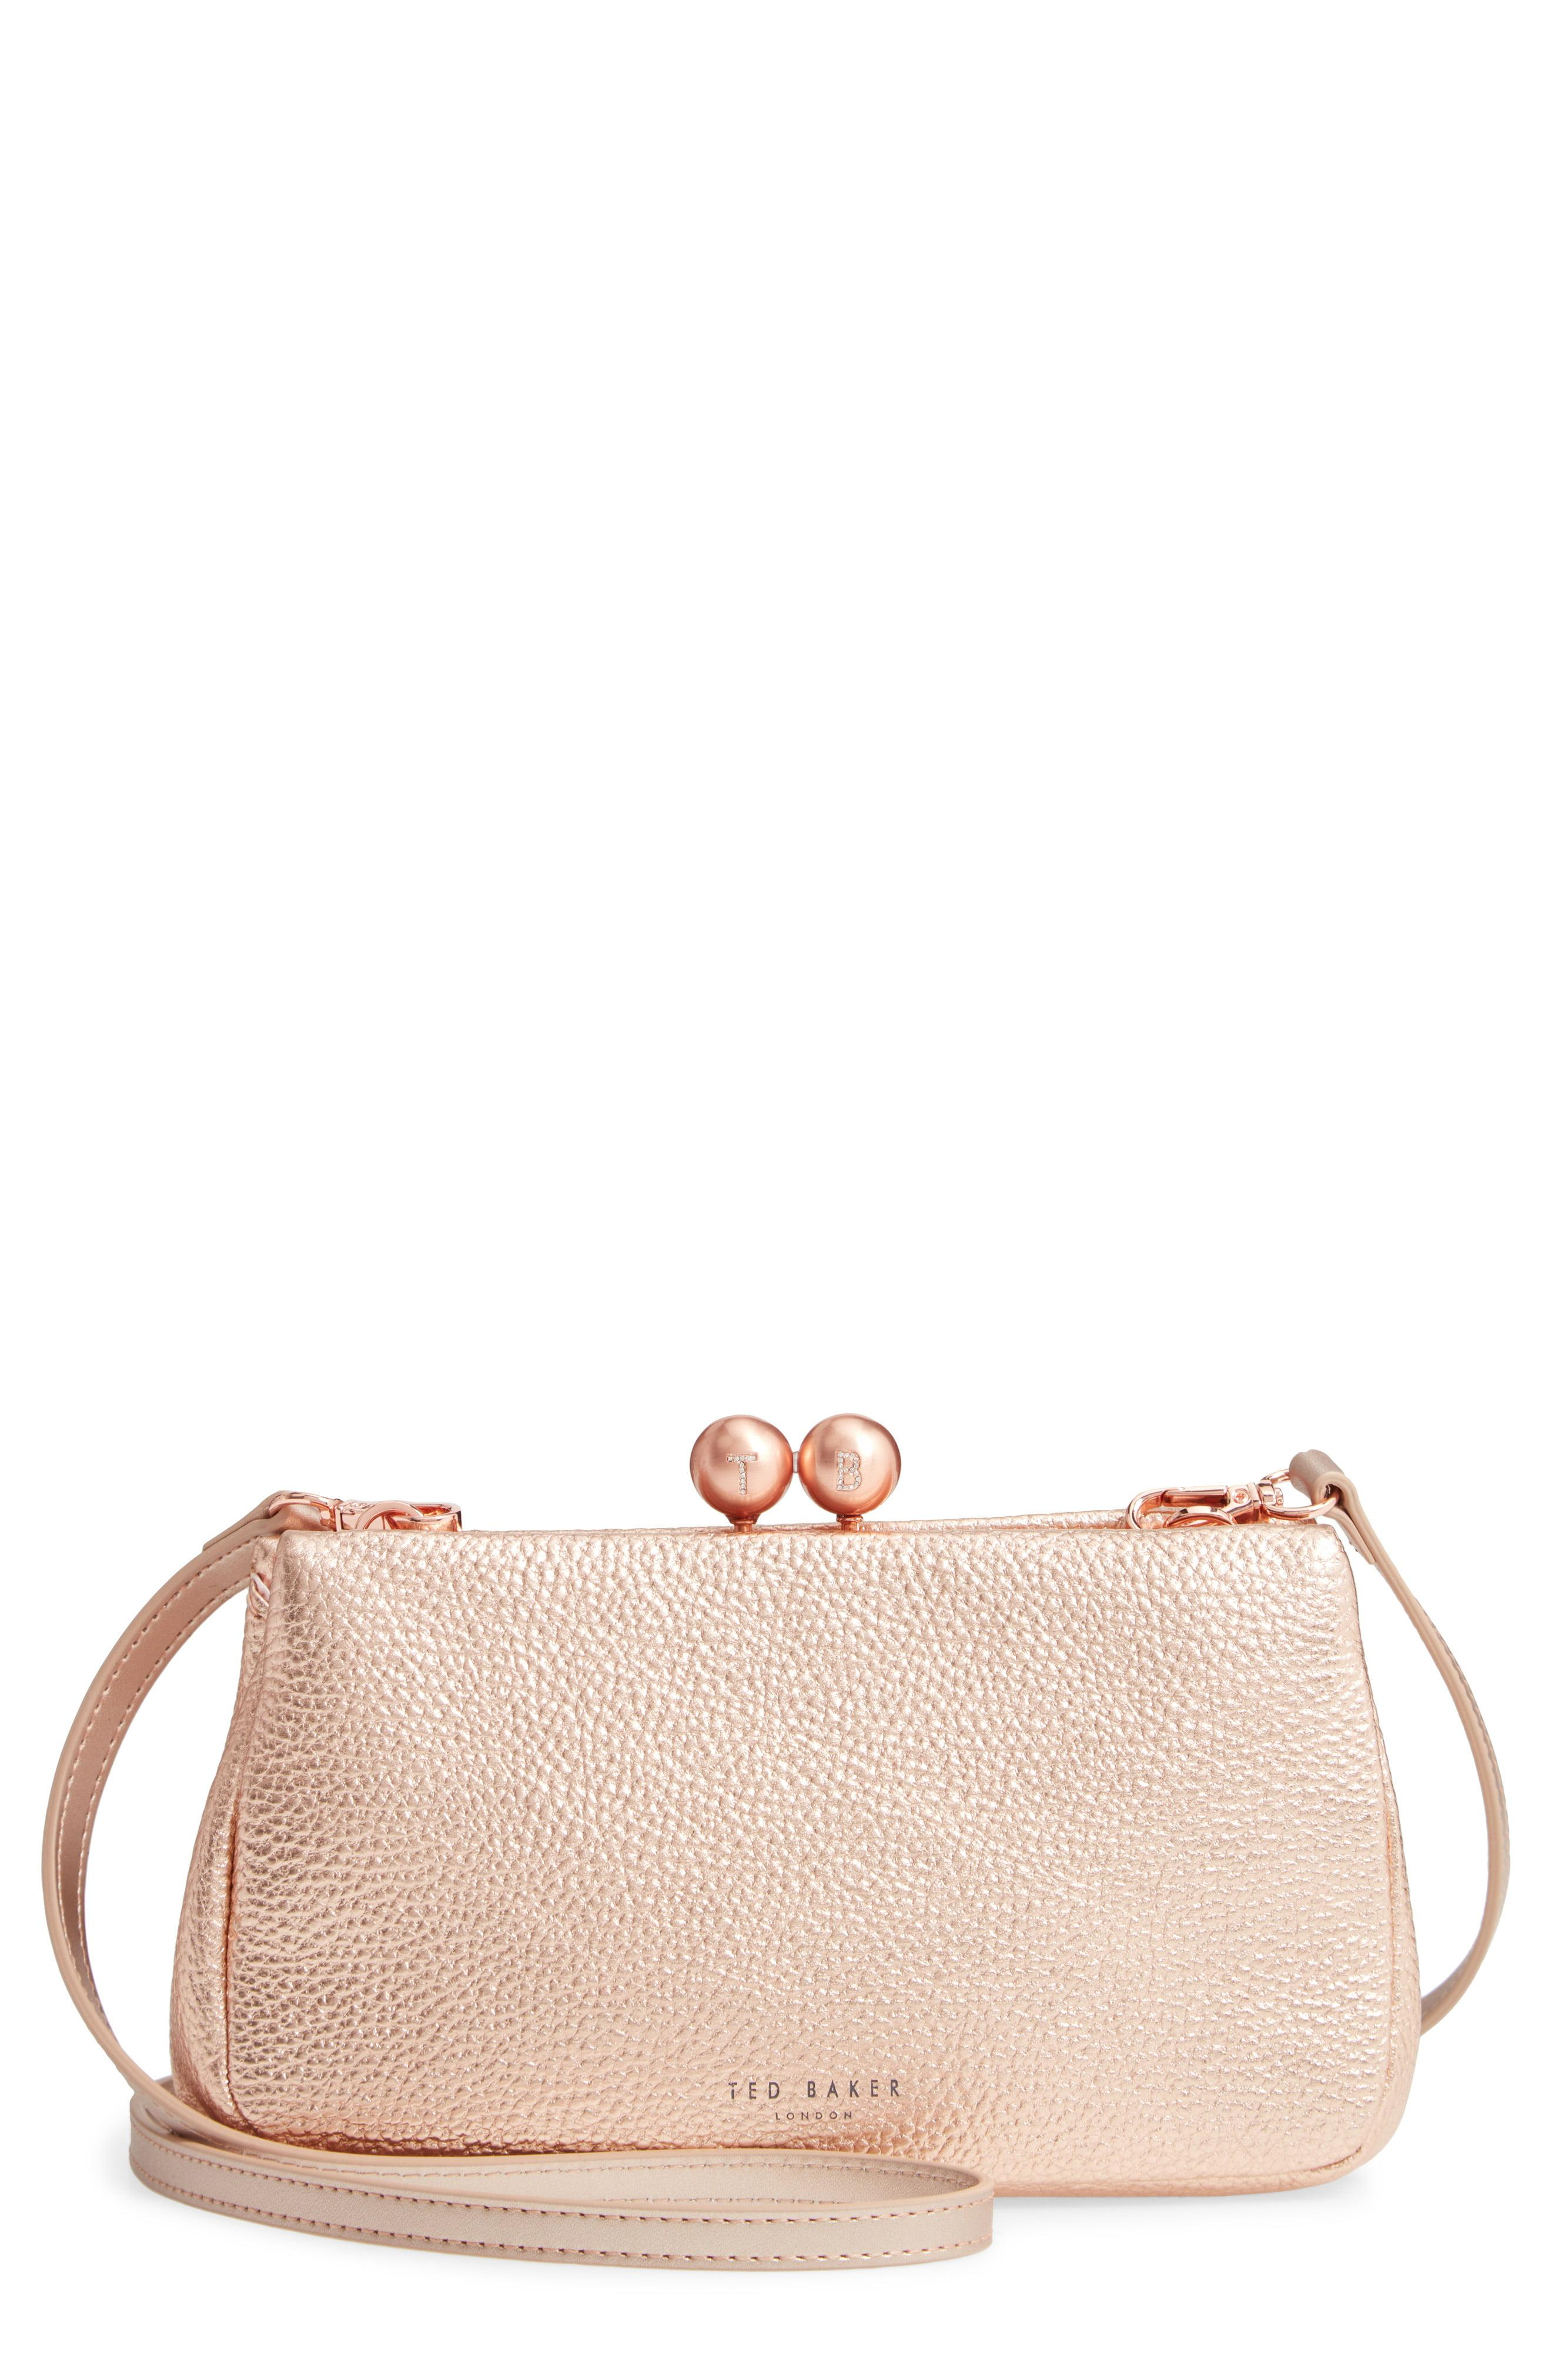 7f19a2aba Lyst - Ted Baker Chrina Leather Crossbody Bag - Metallic in Pink